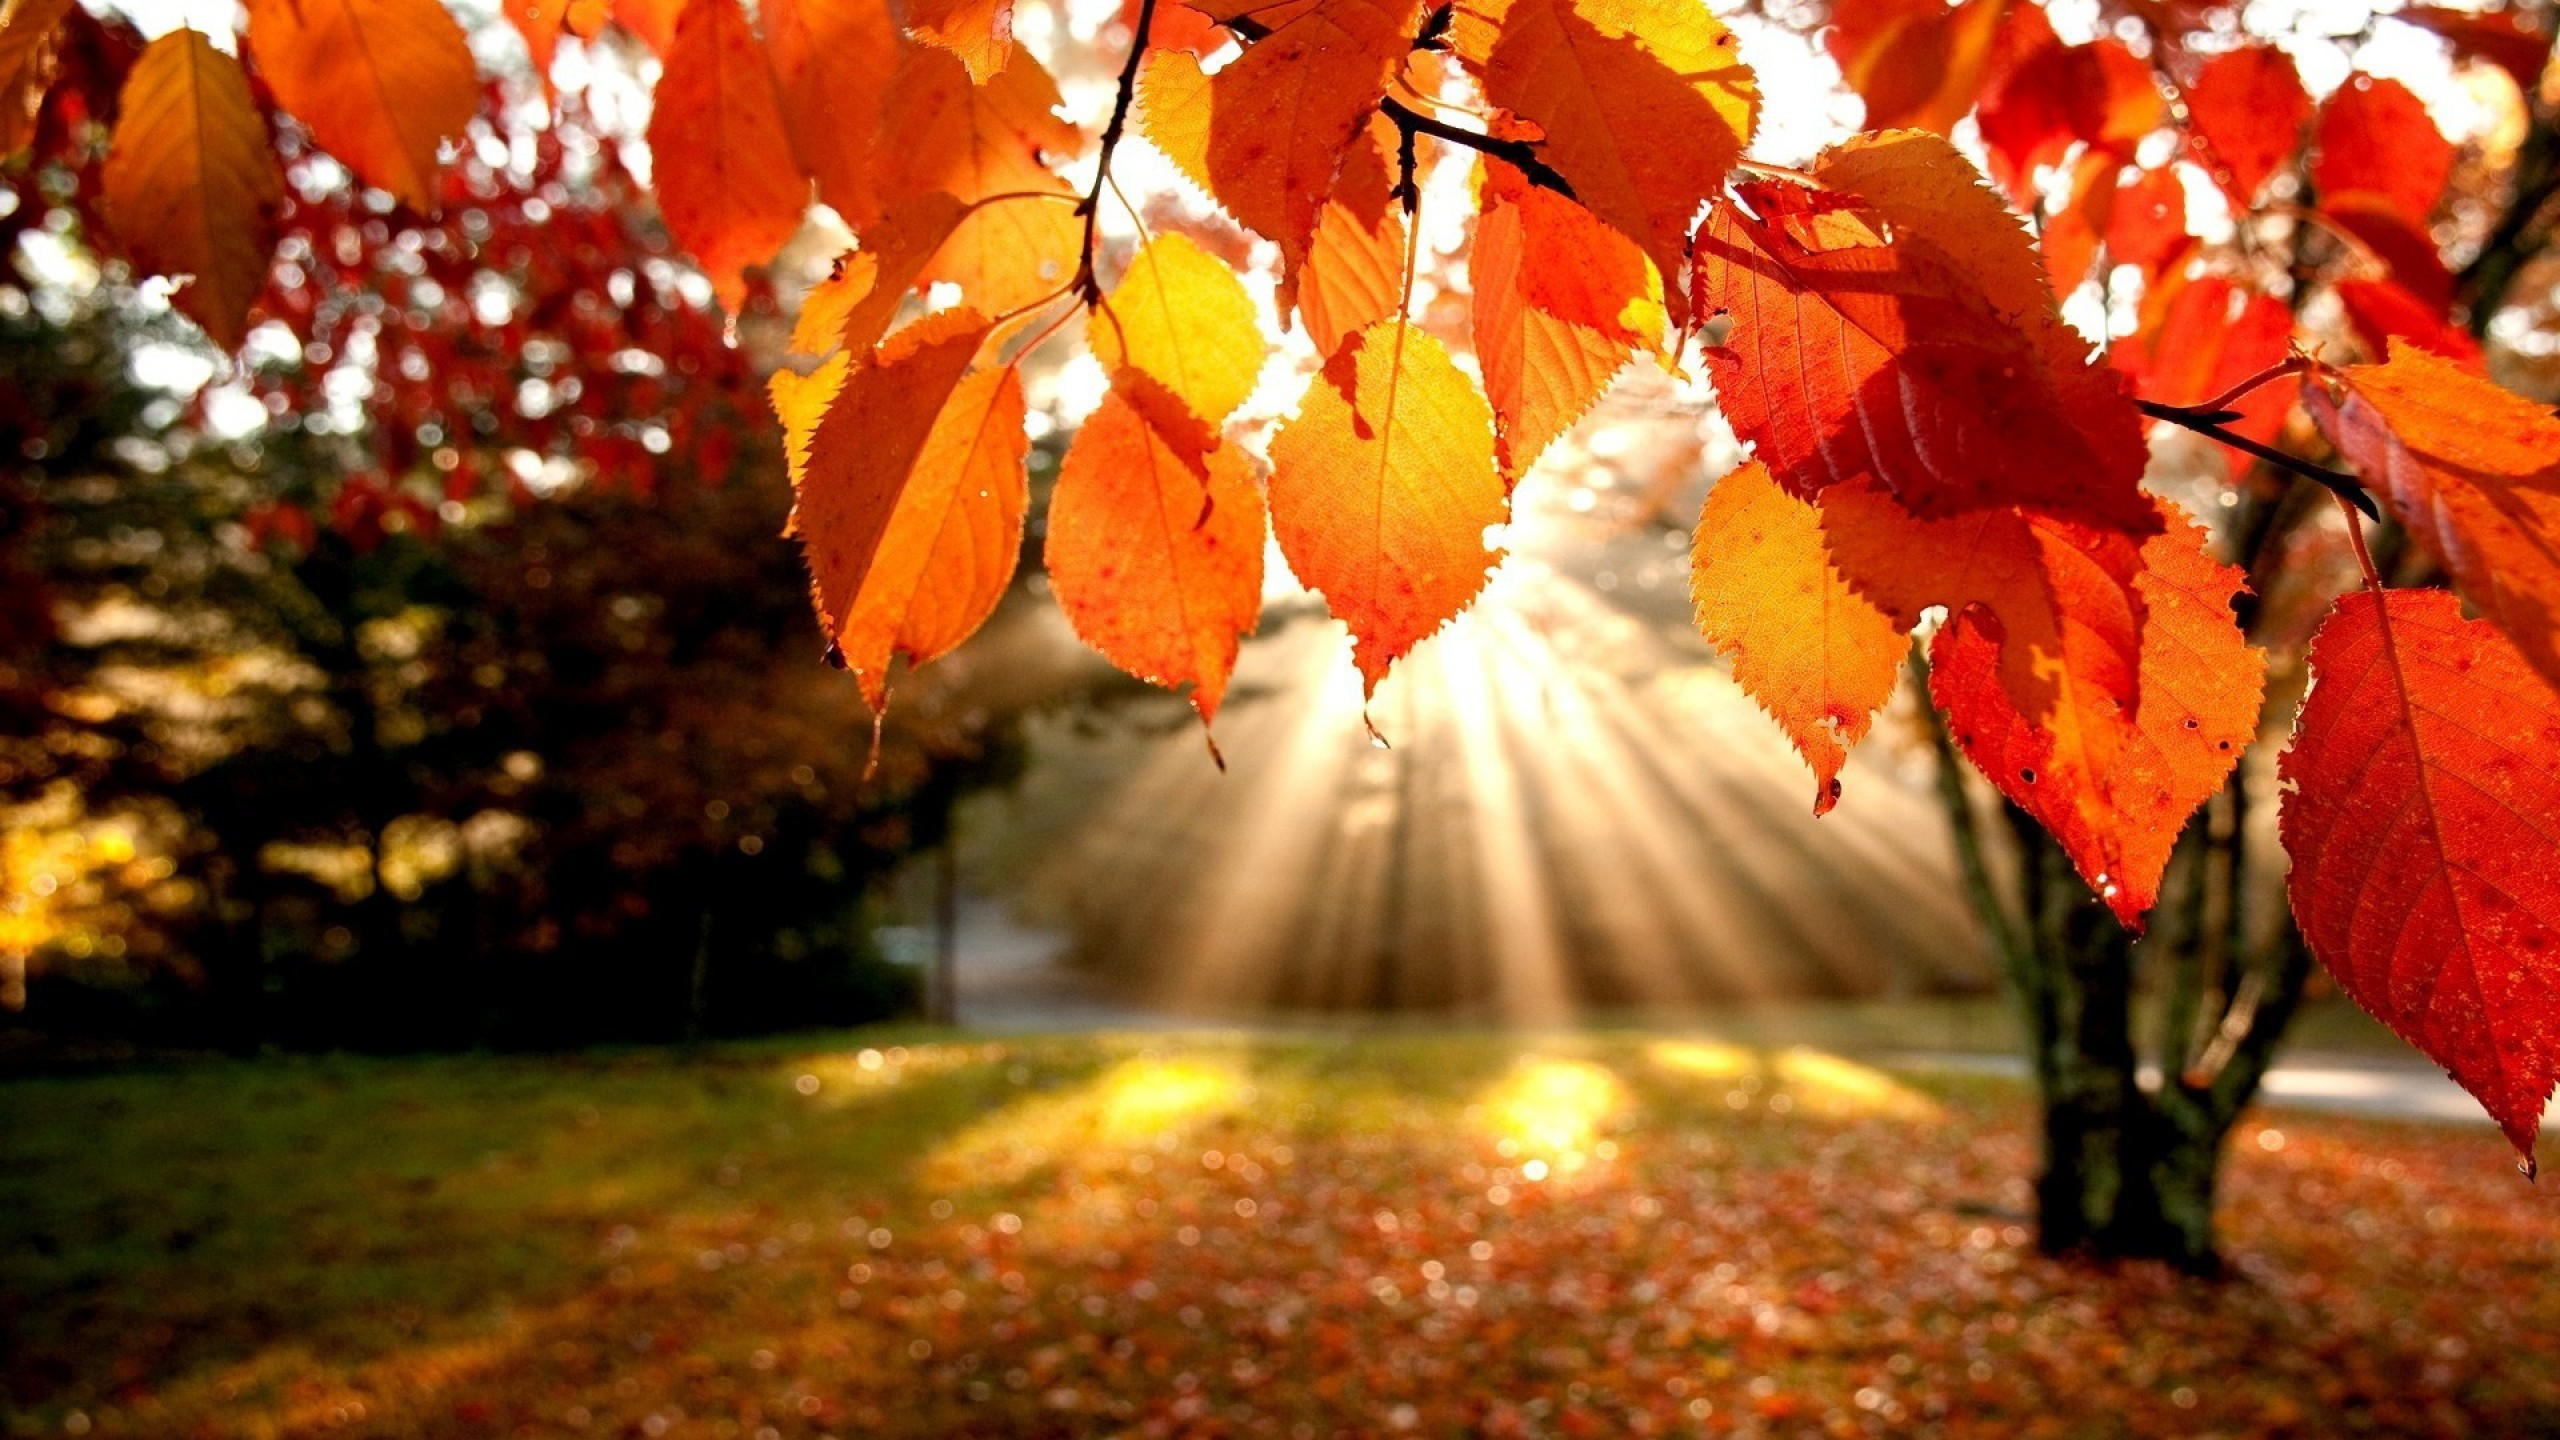 Summary of Ode to Autumn by John Keats - Beaming Notes